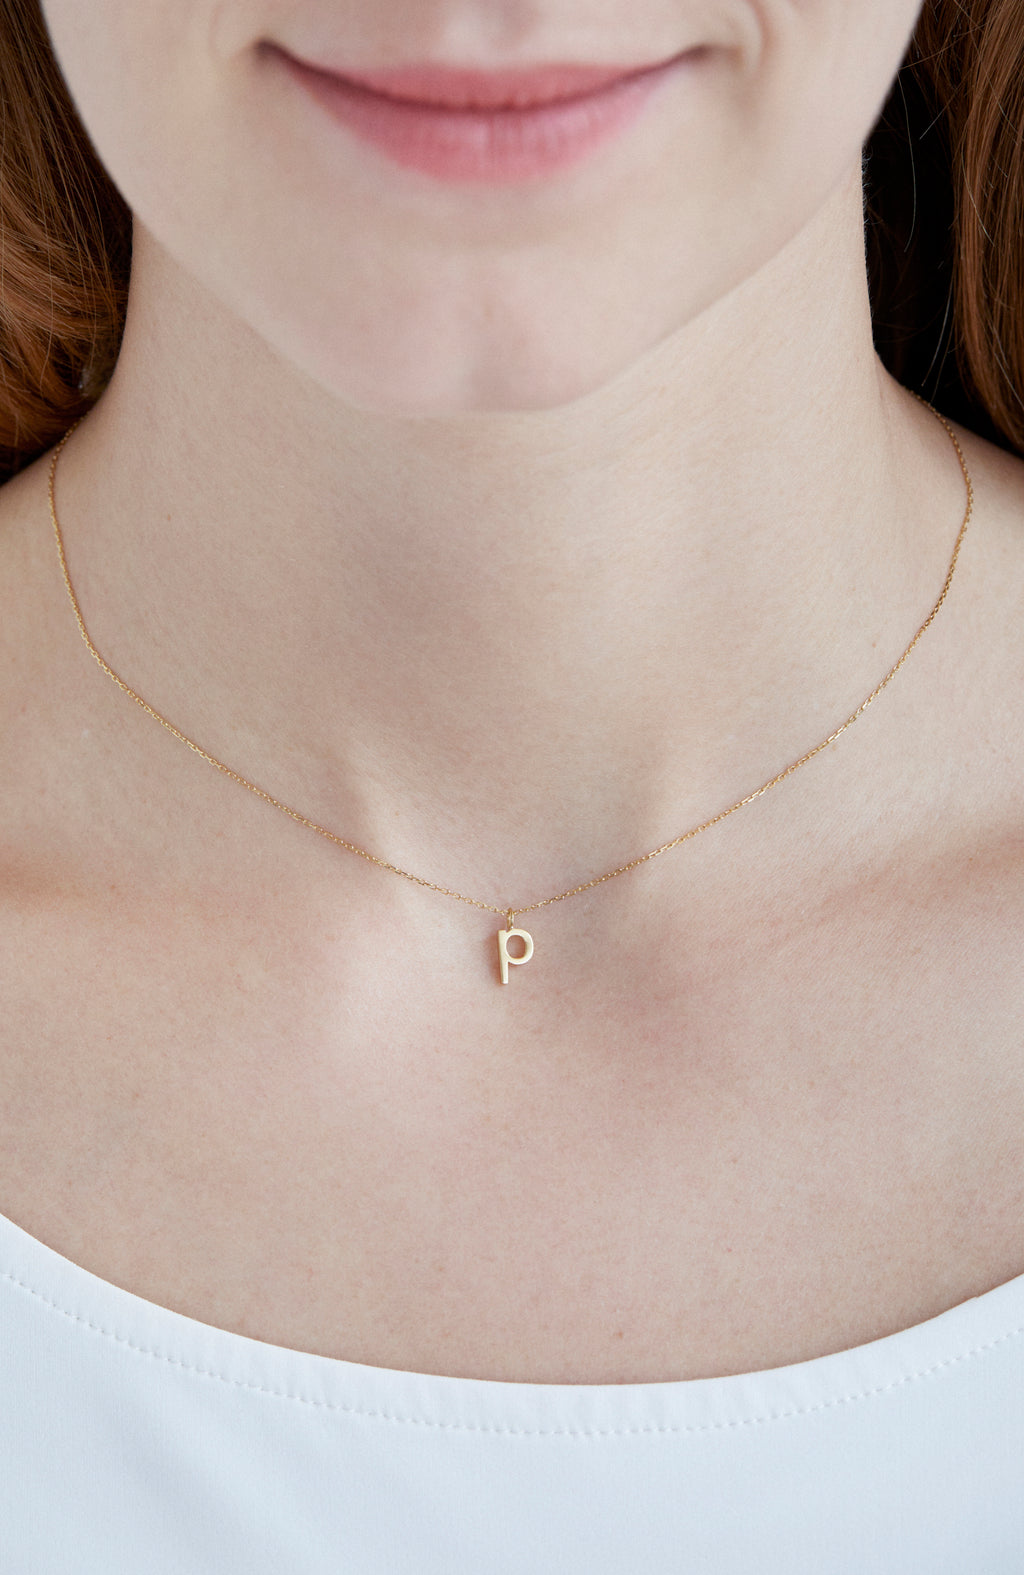 p 30pt Necklace